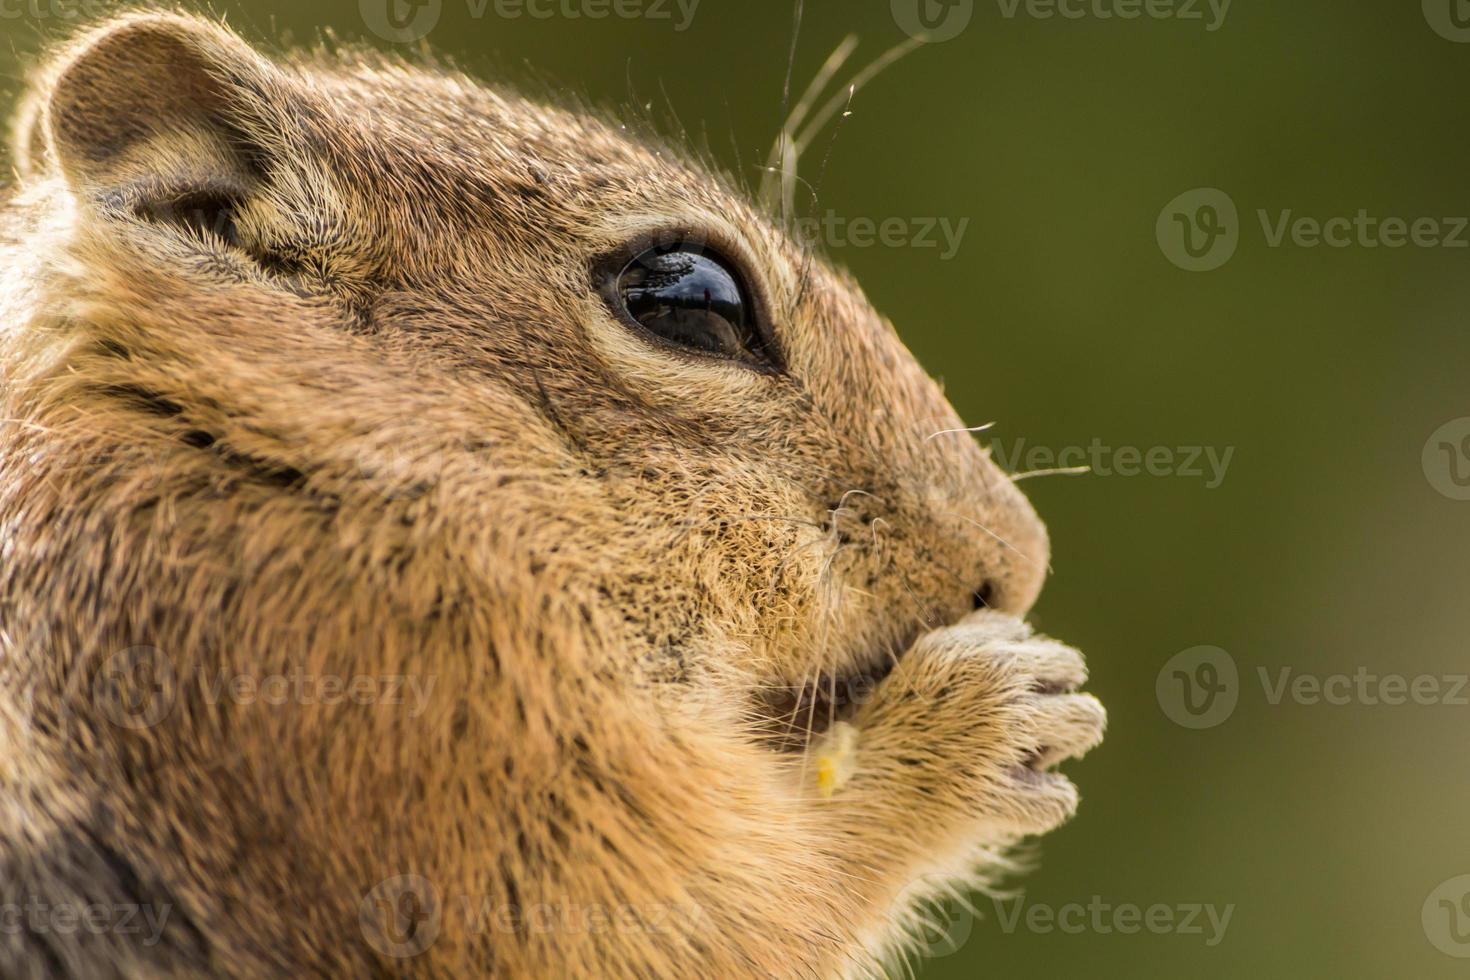 Ground Squirrel eating a nut photo